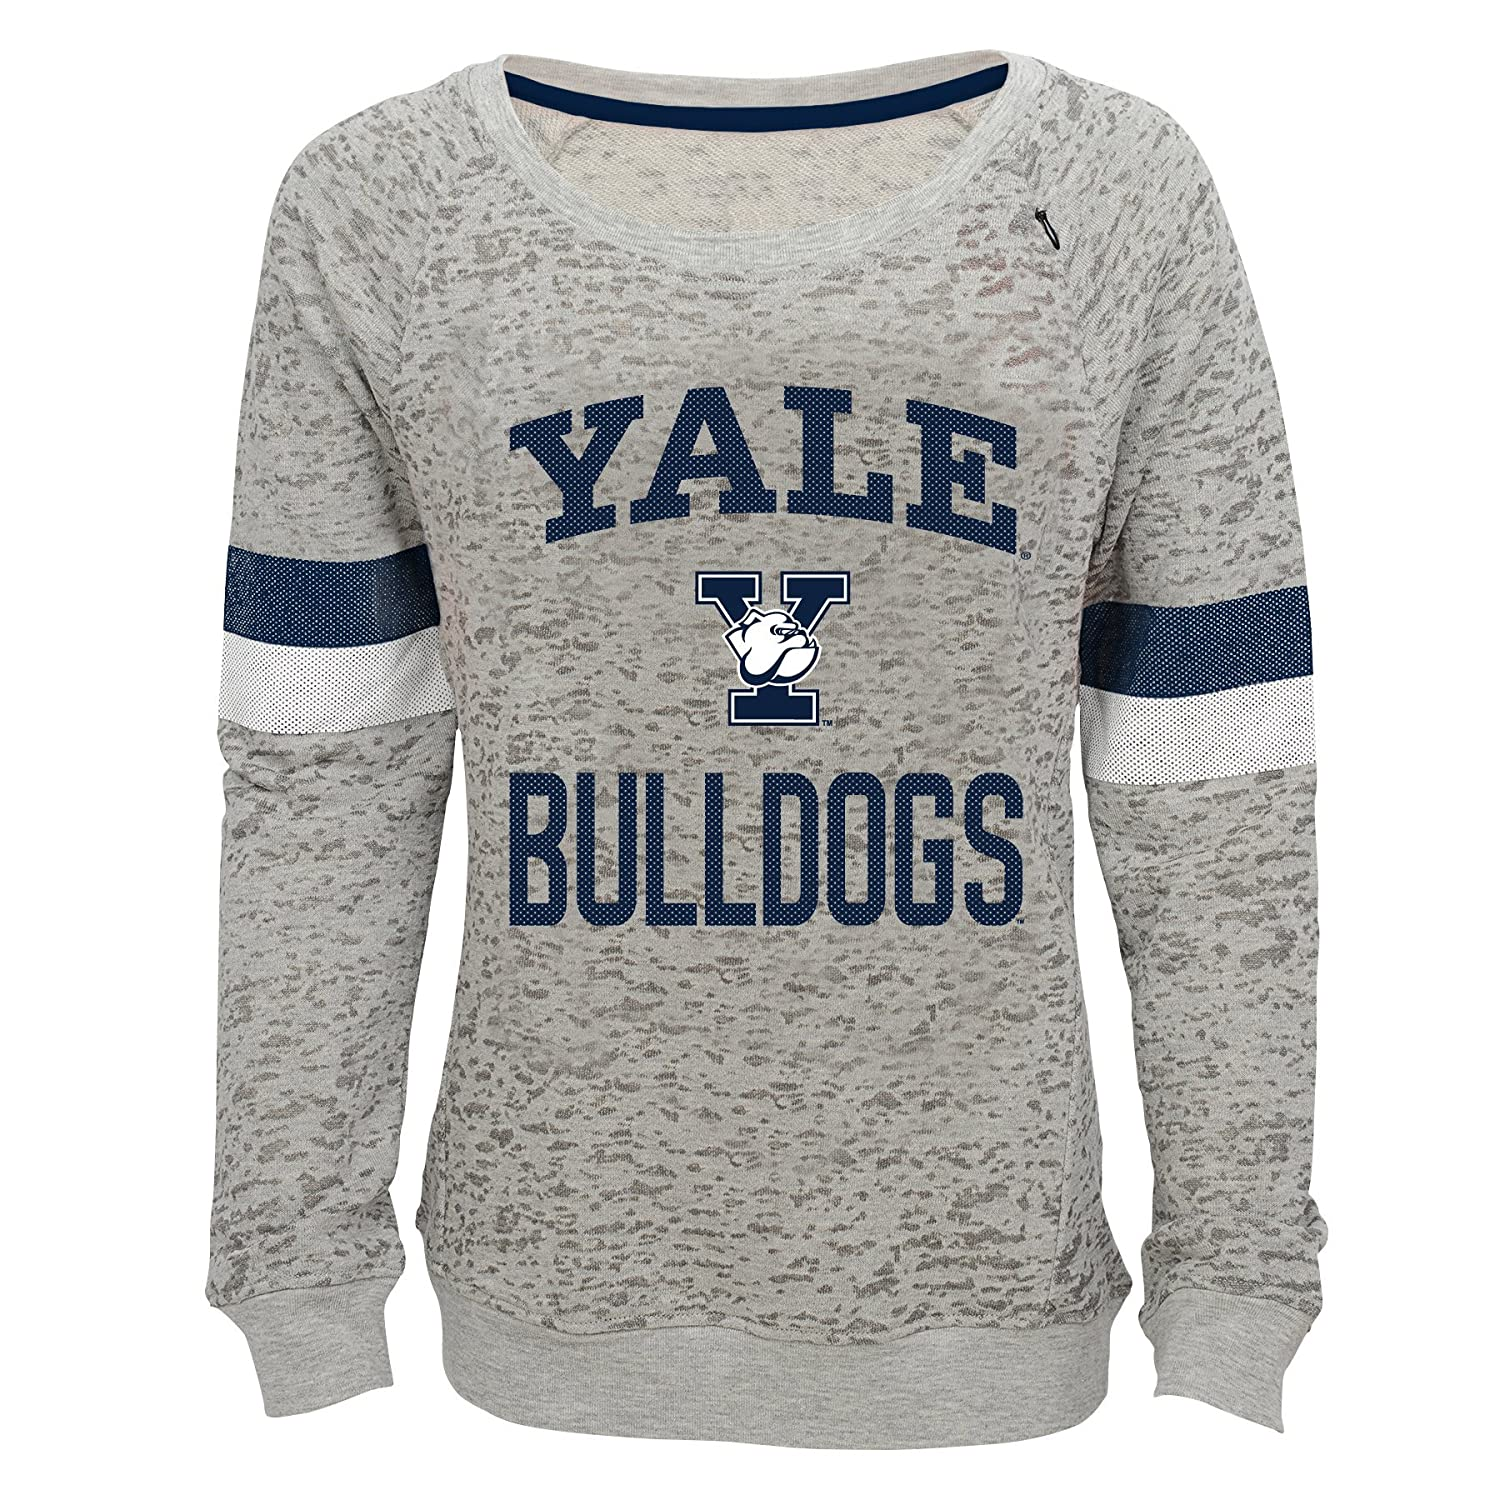 16 Youth X-Large NCAA by Outerstuff NCAA Yale Bulldogs Youth Girls My City Boat Neck Pullover Heather Grey